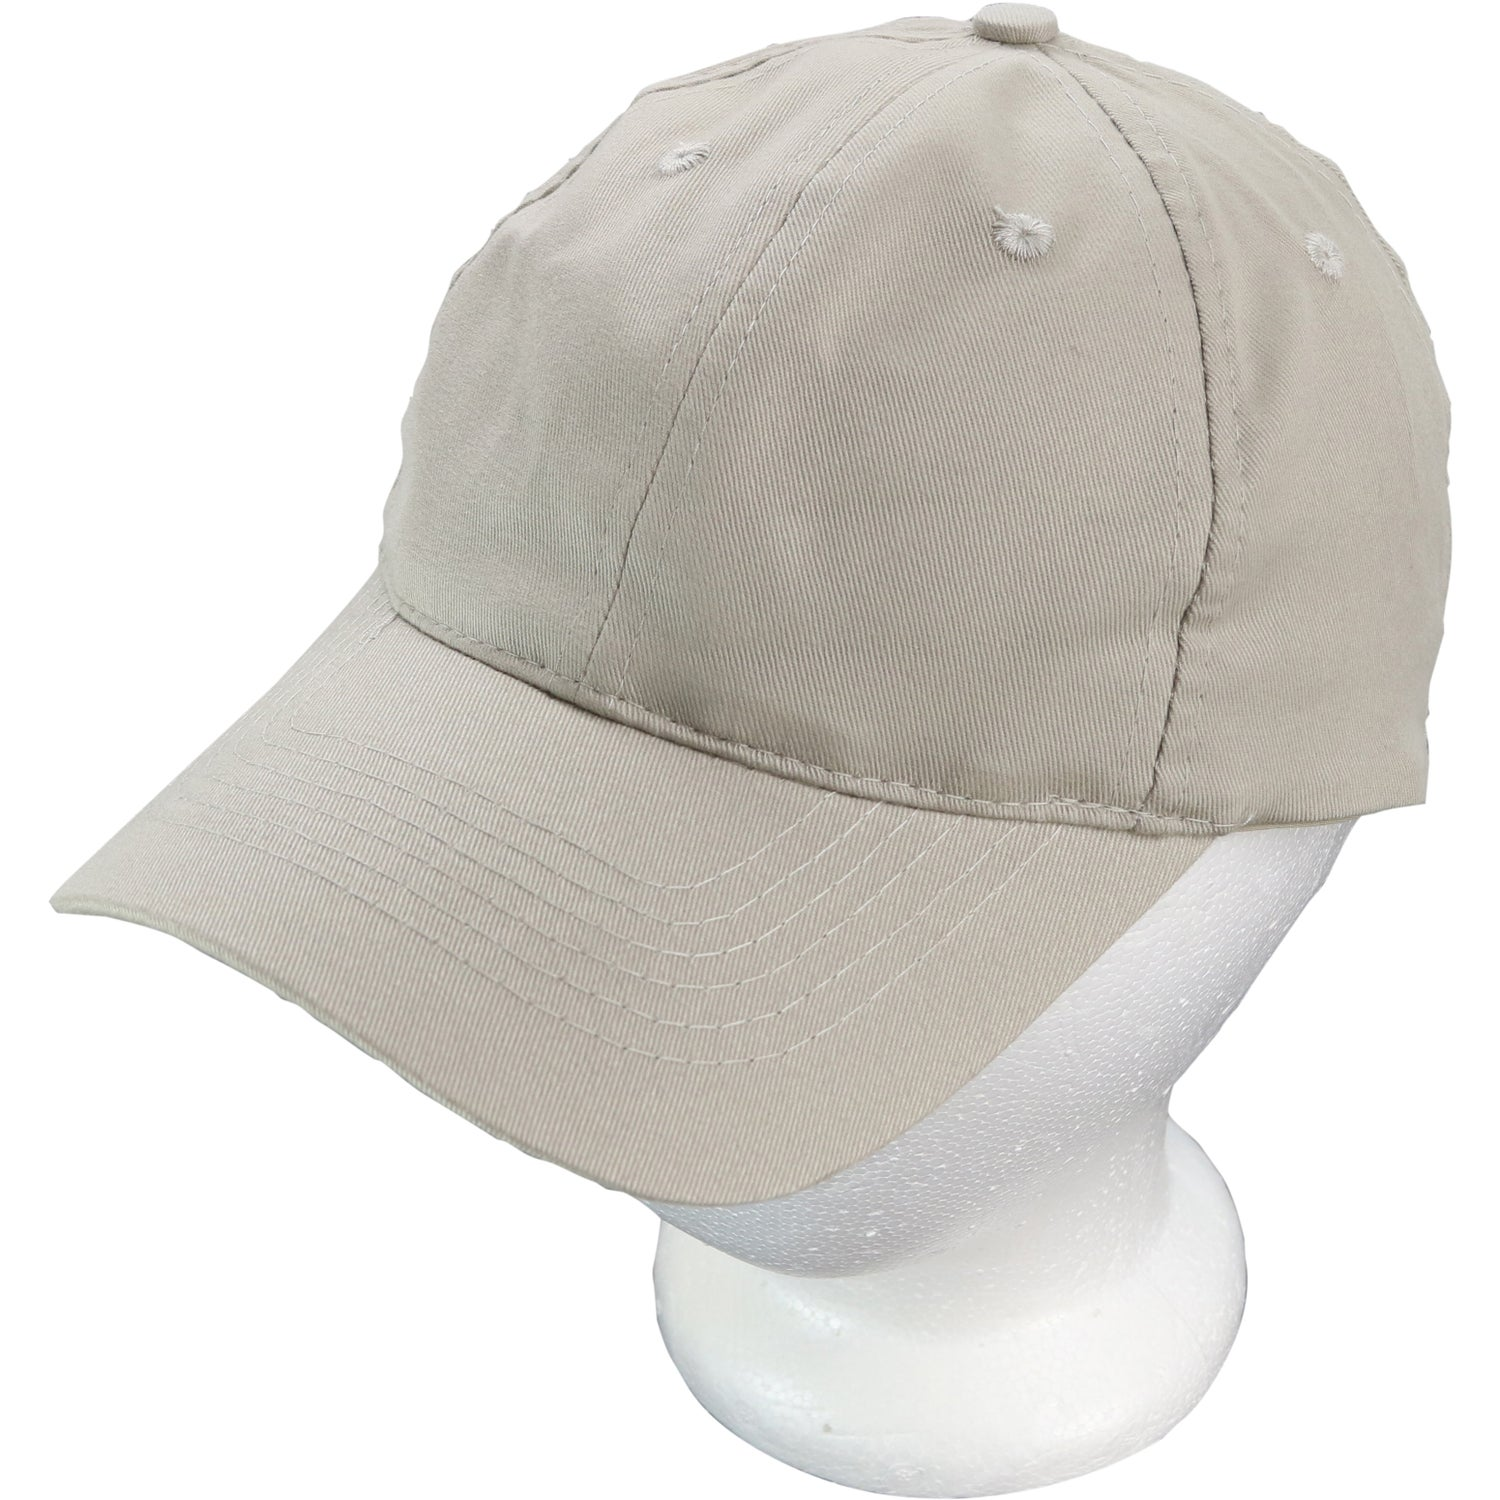 Buckle Hats: Promotional Buckle Lightweight Brushed Cotton Twill Hats